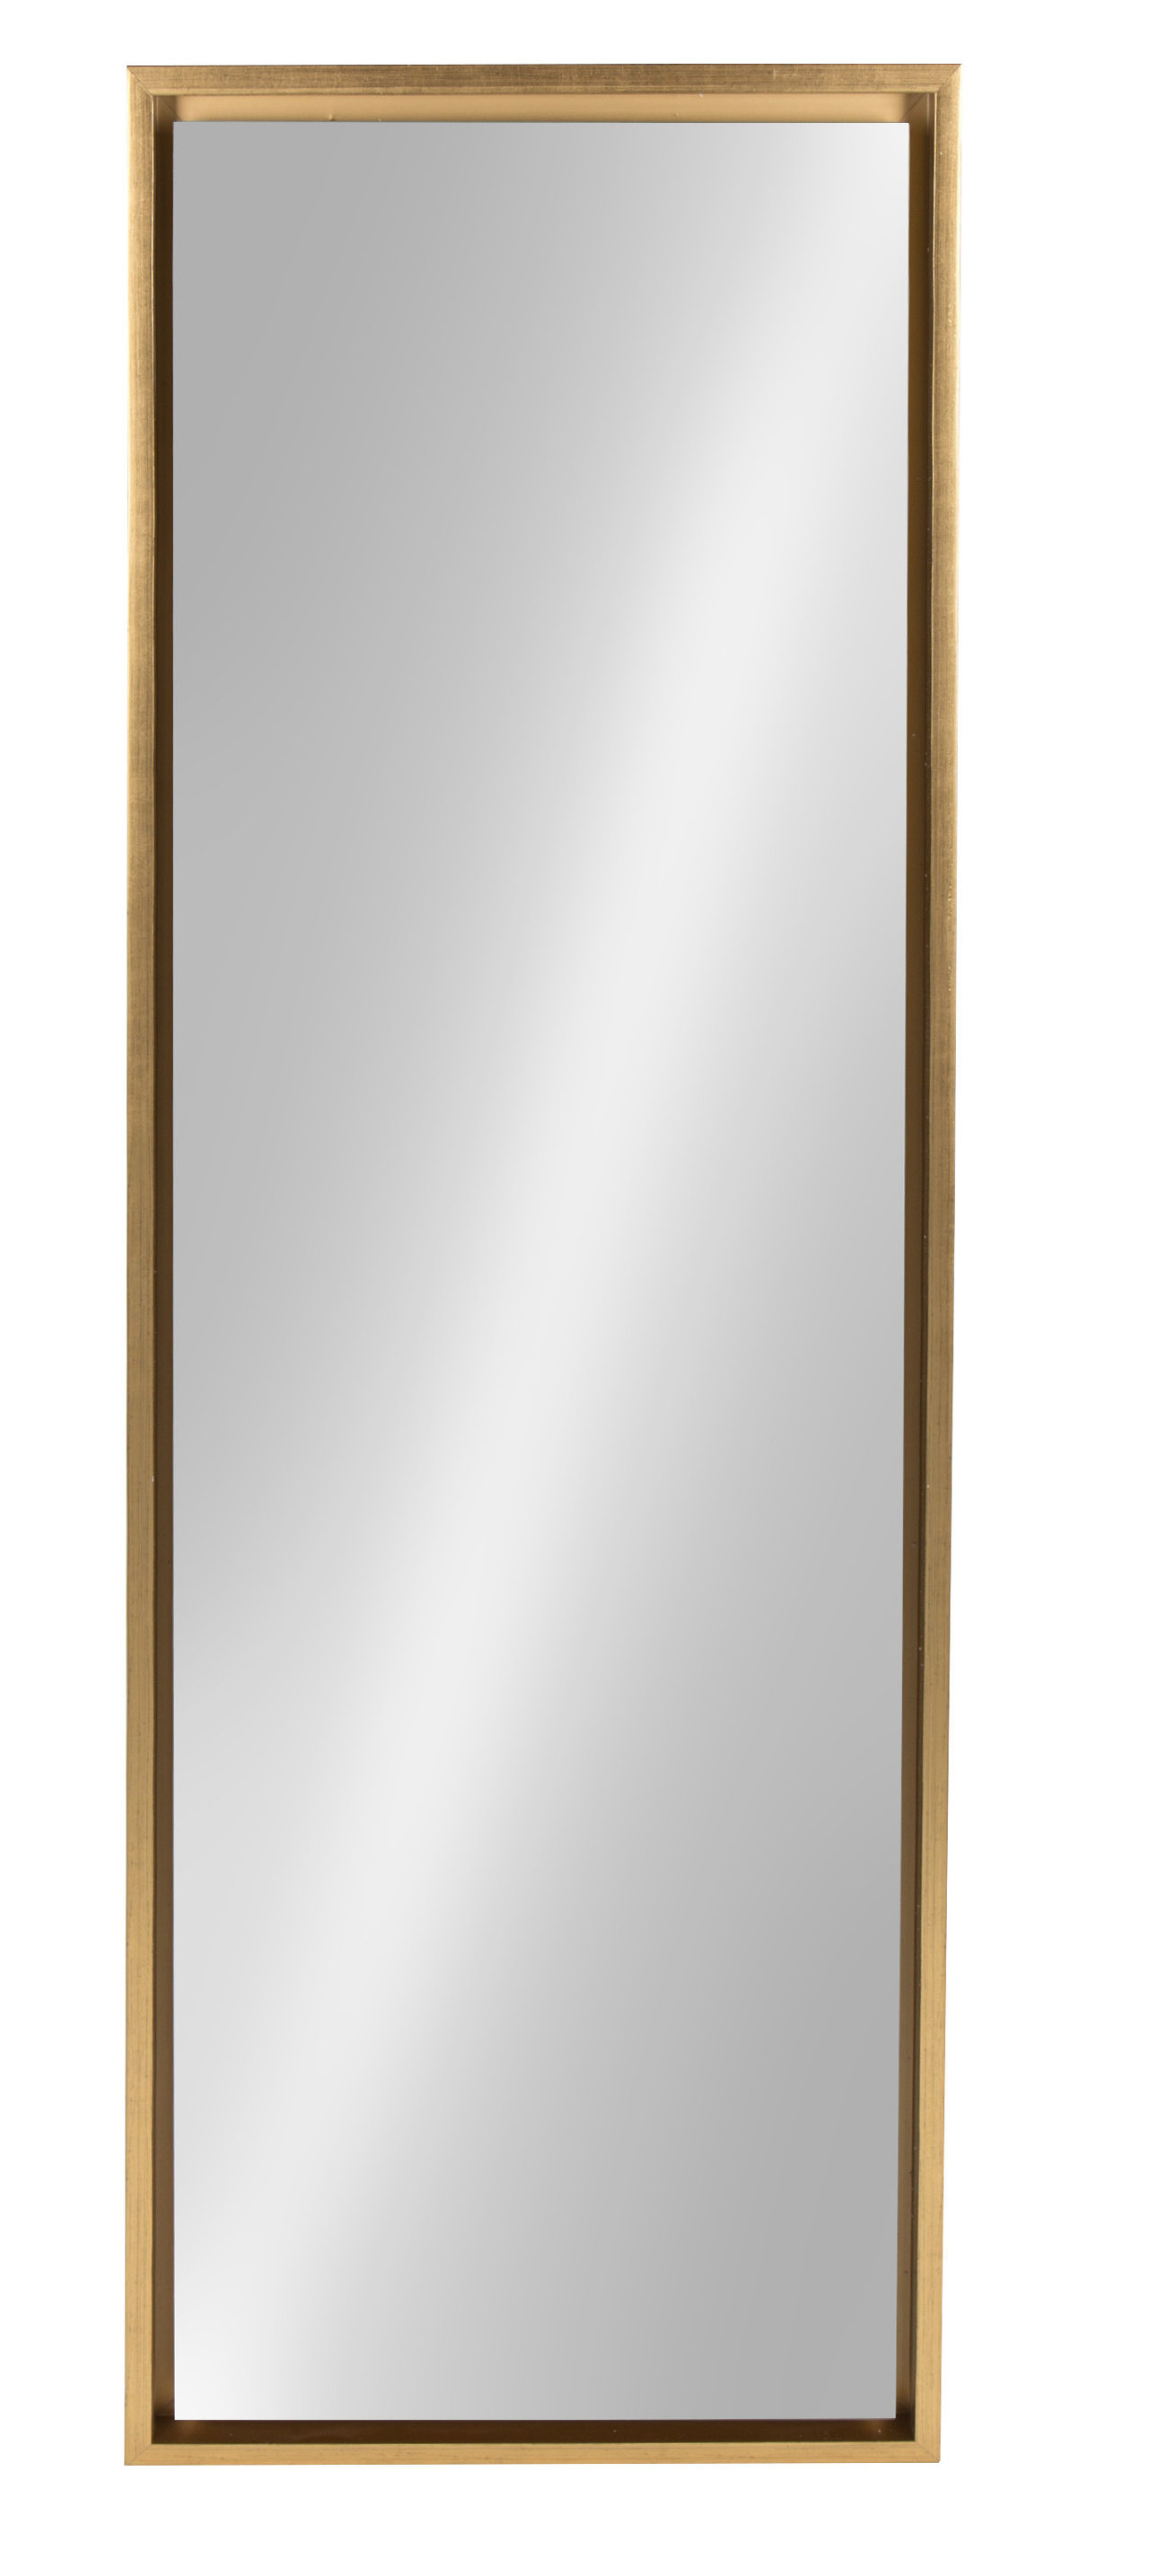 Modern Gold Wall Mirrors | Allmodern Inside Bracelet Traditional Accent Mirrors (View 20 of 20)